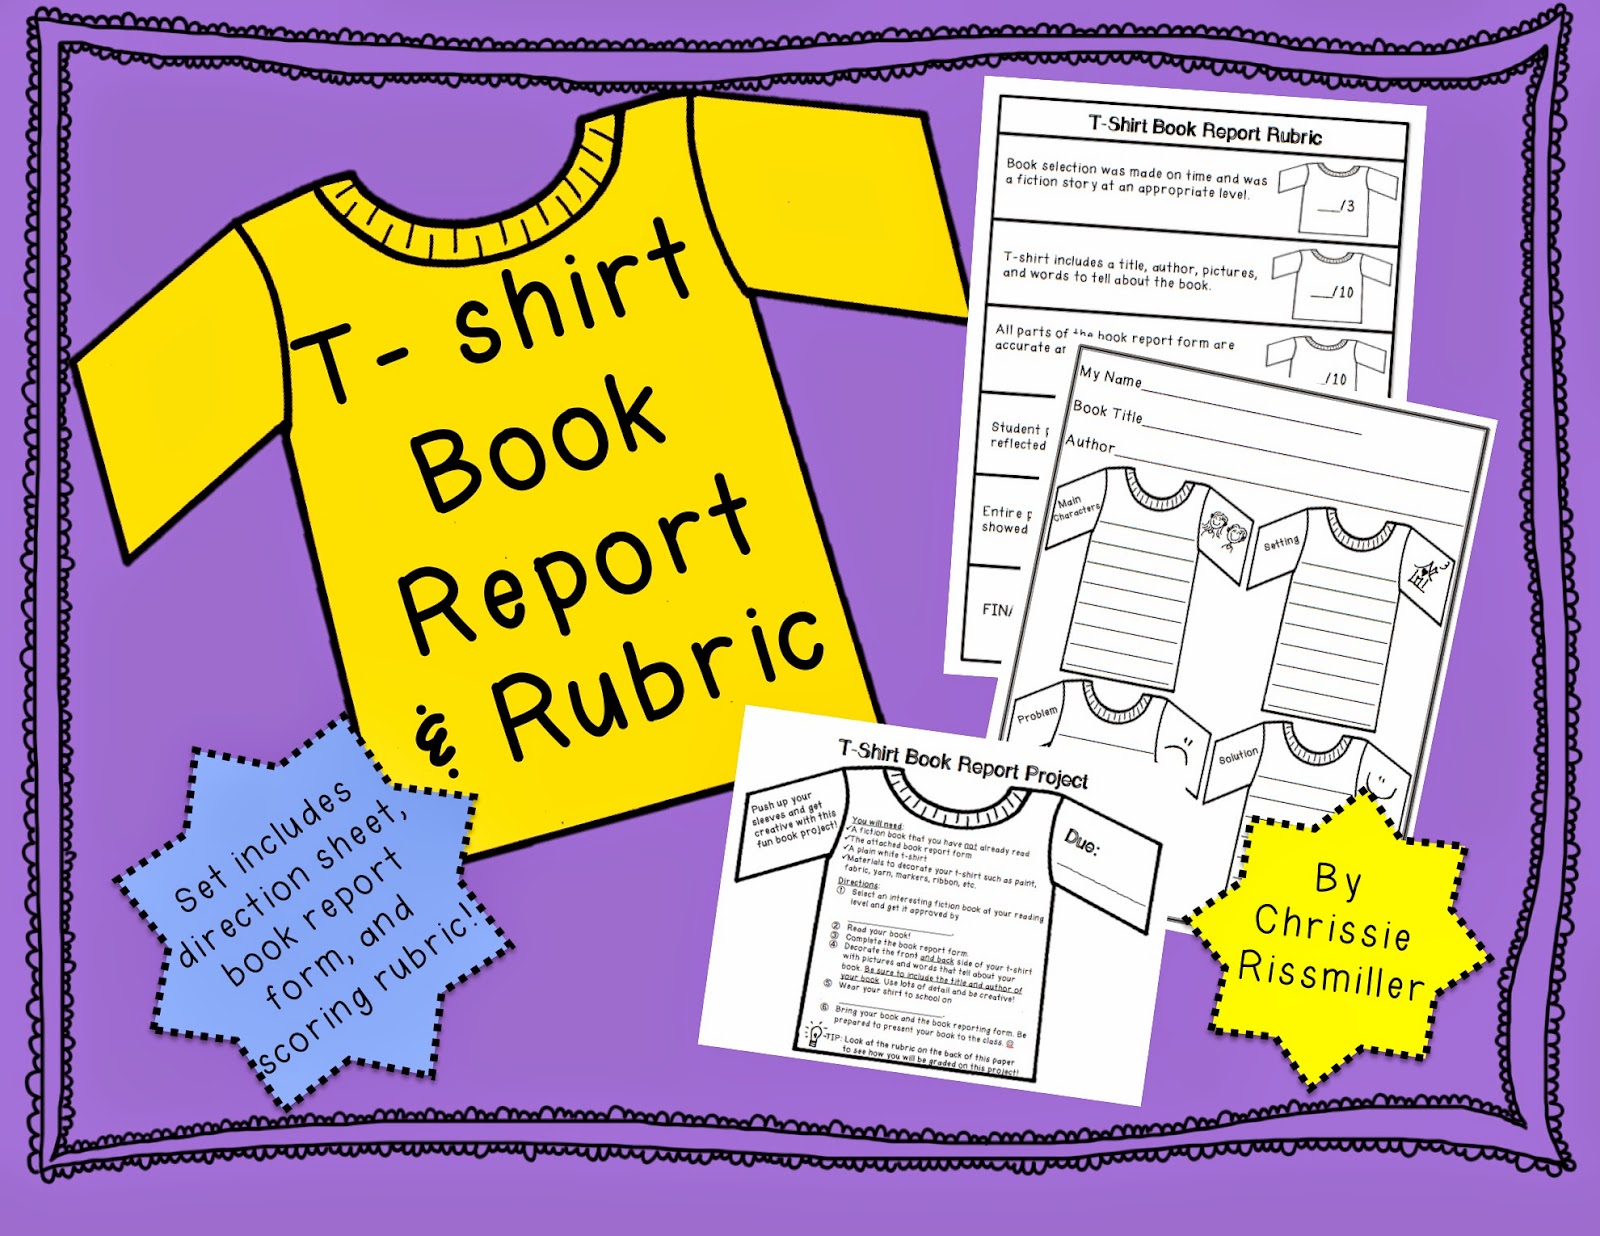 t-shirt book report Be ready to wear your next book report project this book report will be represented on a t-shirt that you will get to wear to school fun, fun.